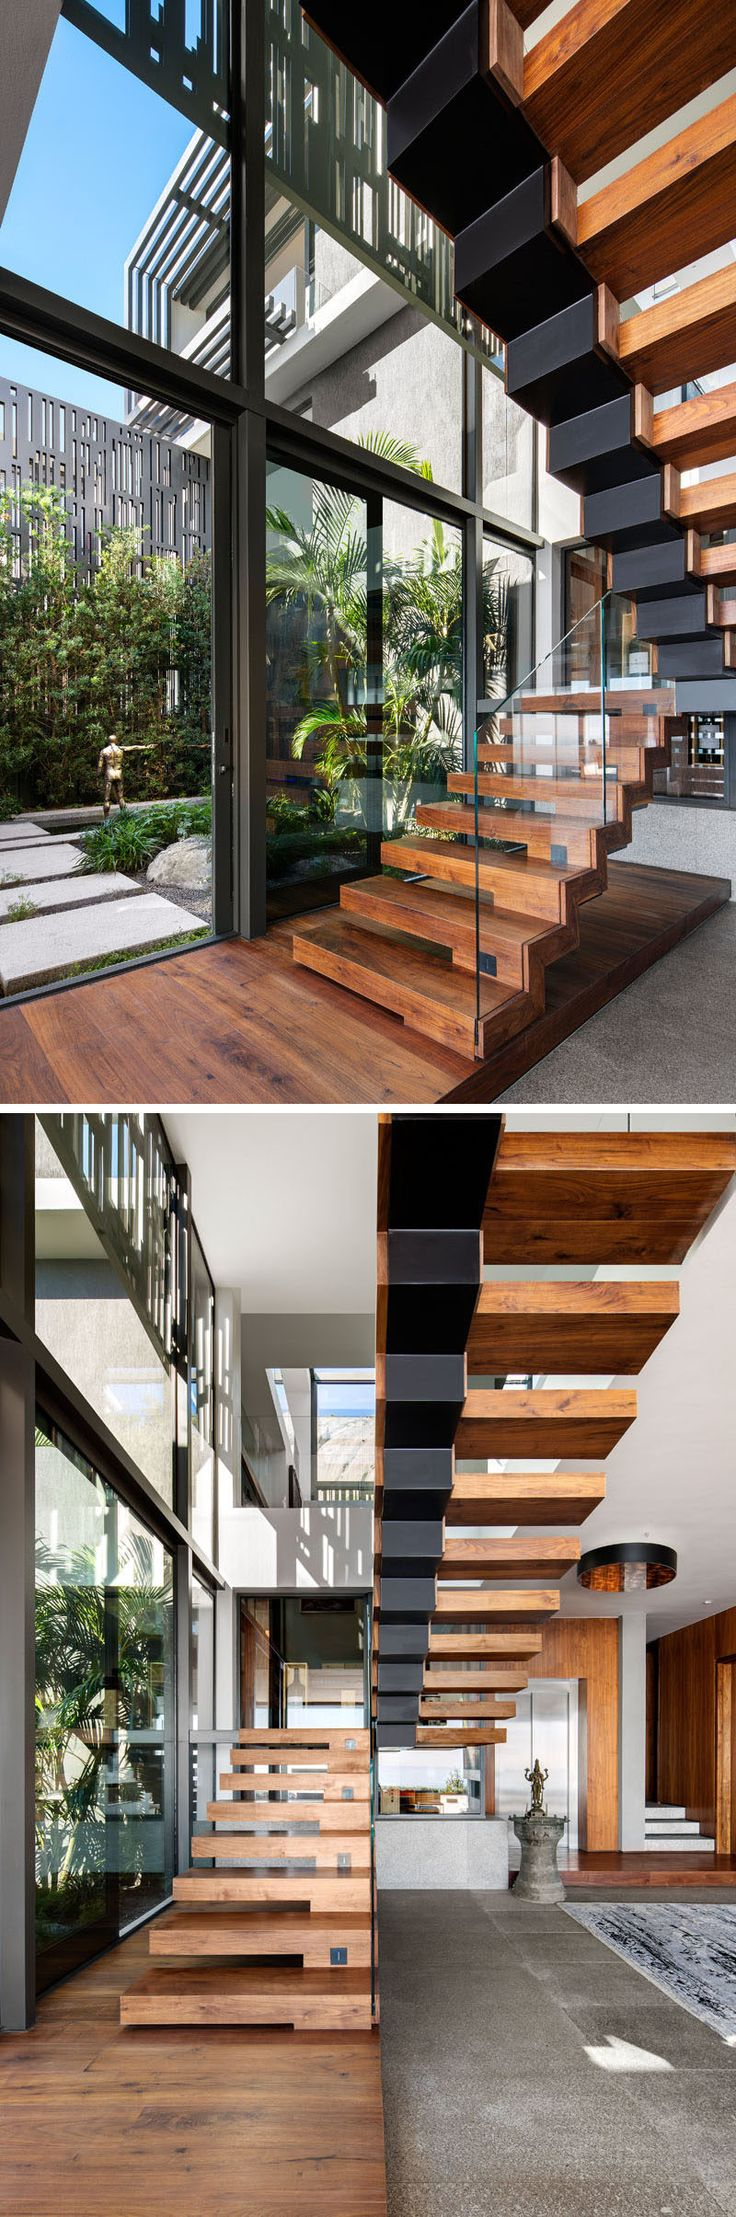 Modern wood and black metal stairs lead up to the upper floor of the home, while glass railings appear invisible and allow the view of the courtyard to be uninterrupted.